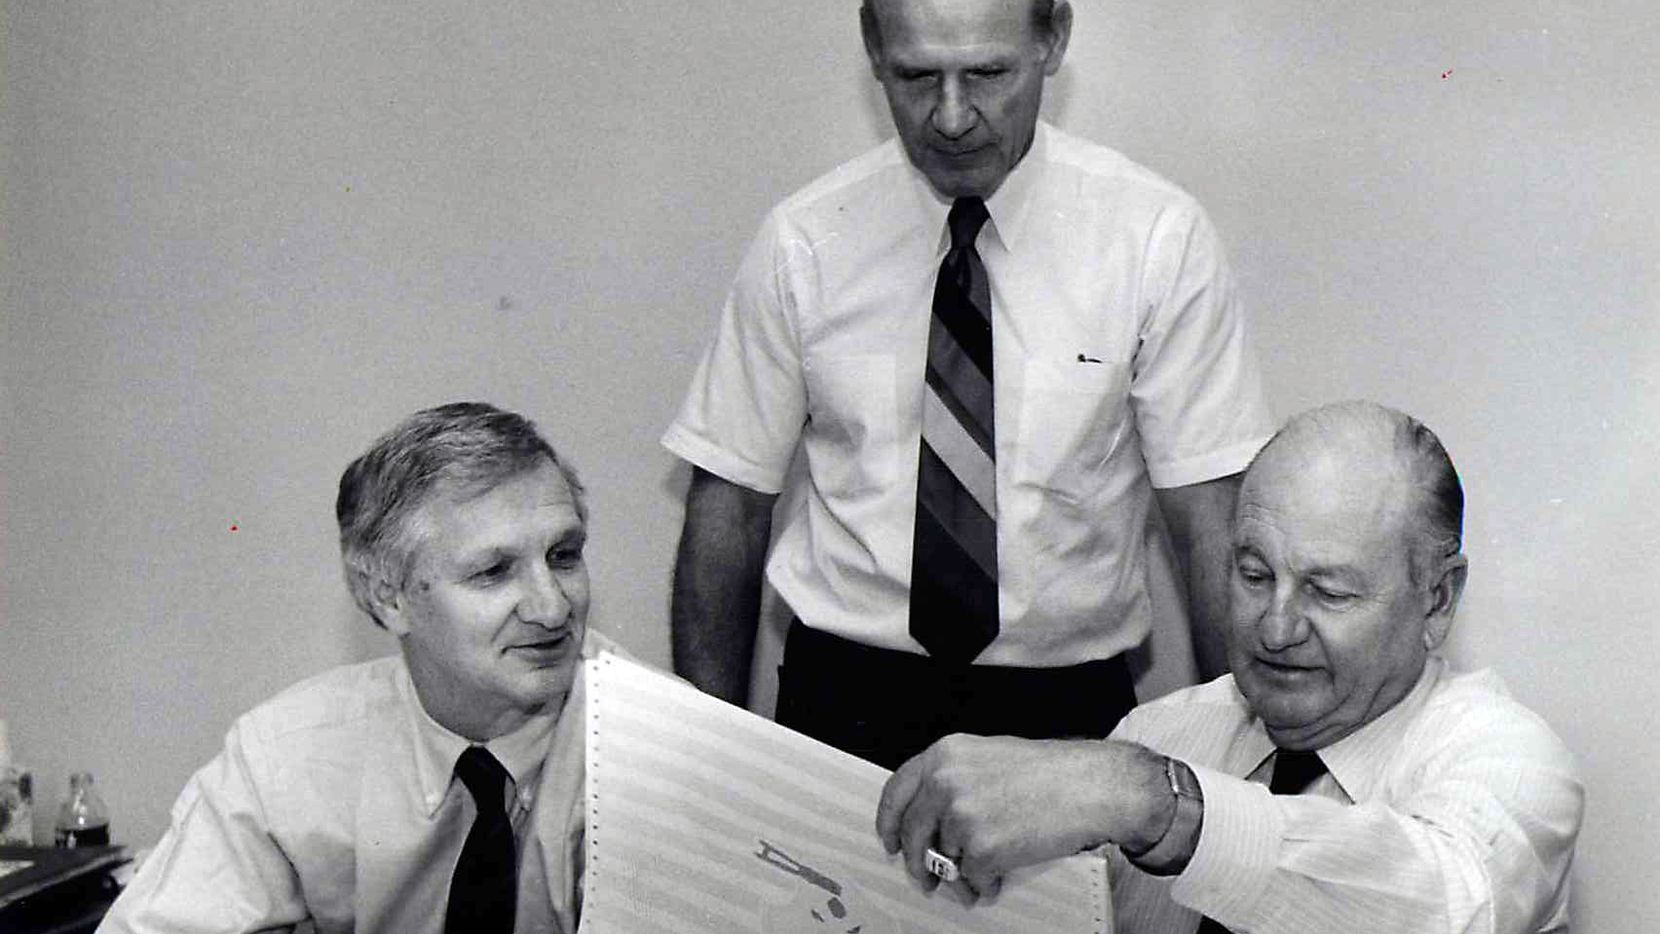 Shot April 29, 1986 - Dallas Cowboys officials Gil Brandt (from left), Tom Landry and Tex Schramm look over their choices for the second round draft picks in a conference room at Valley Ranch.